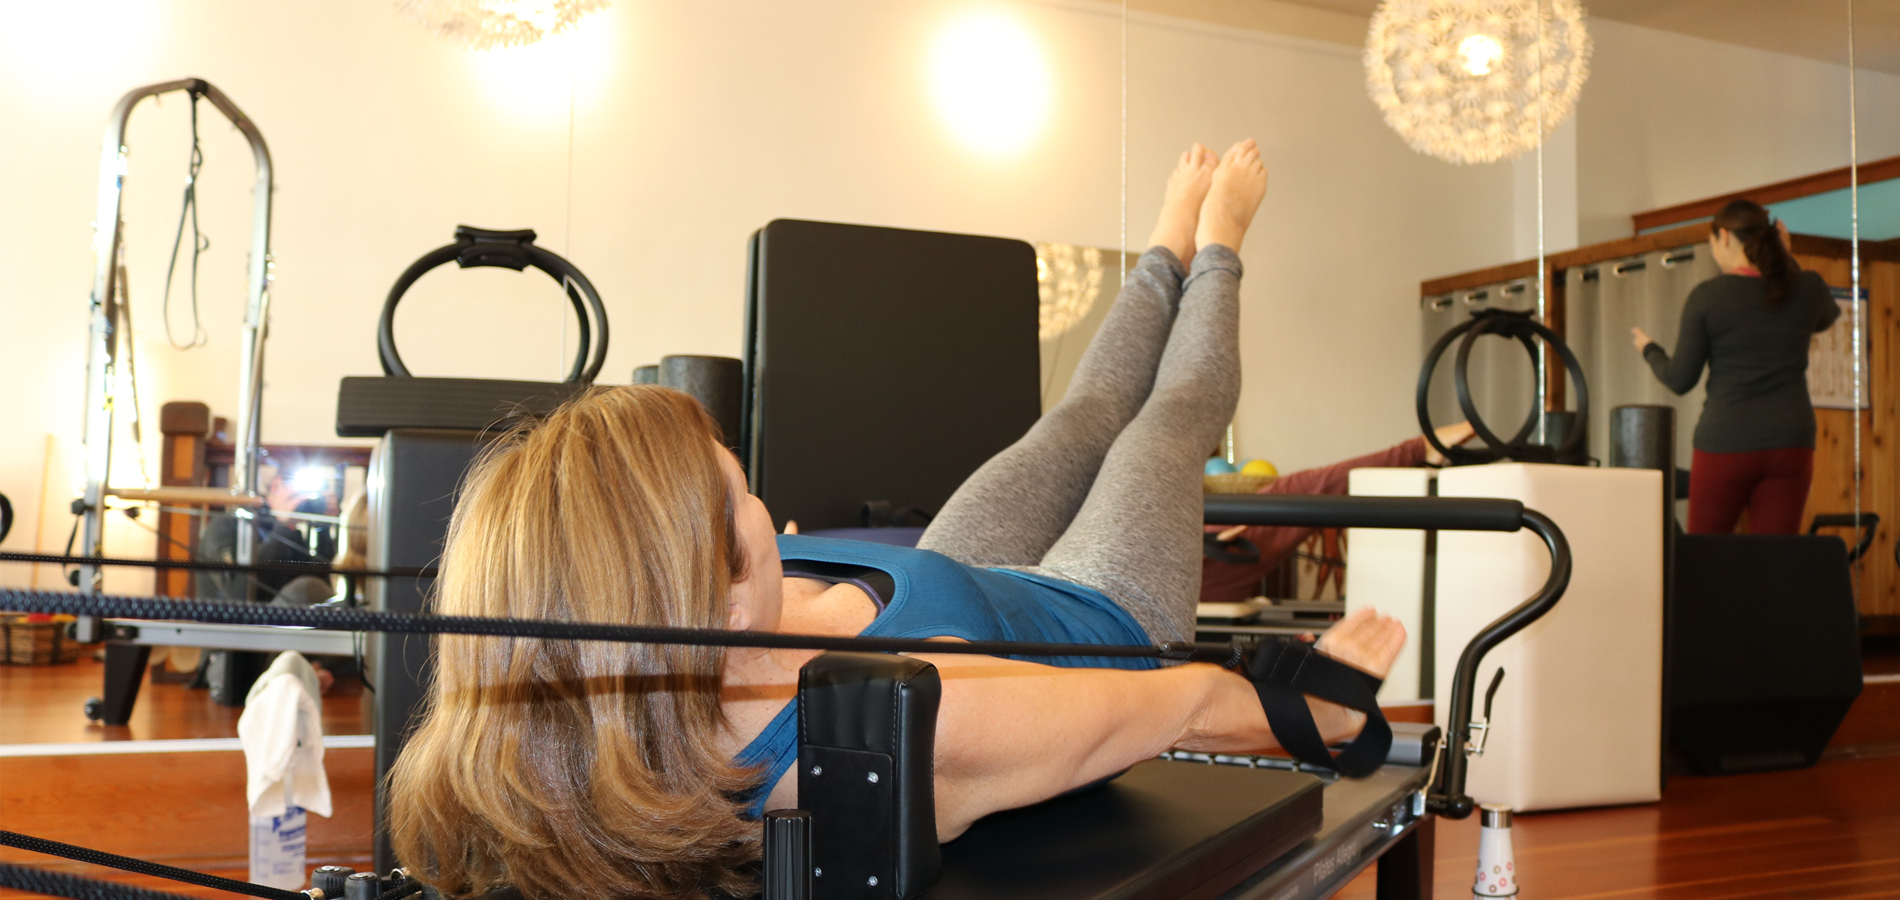 Work with the reformer